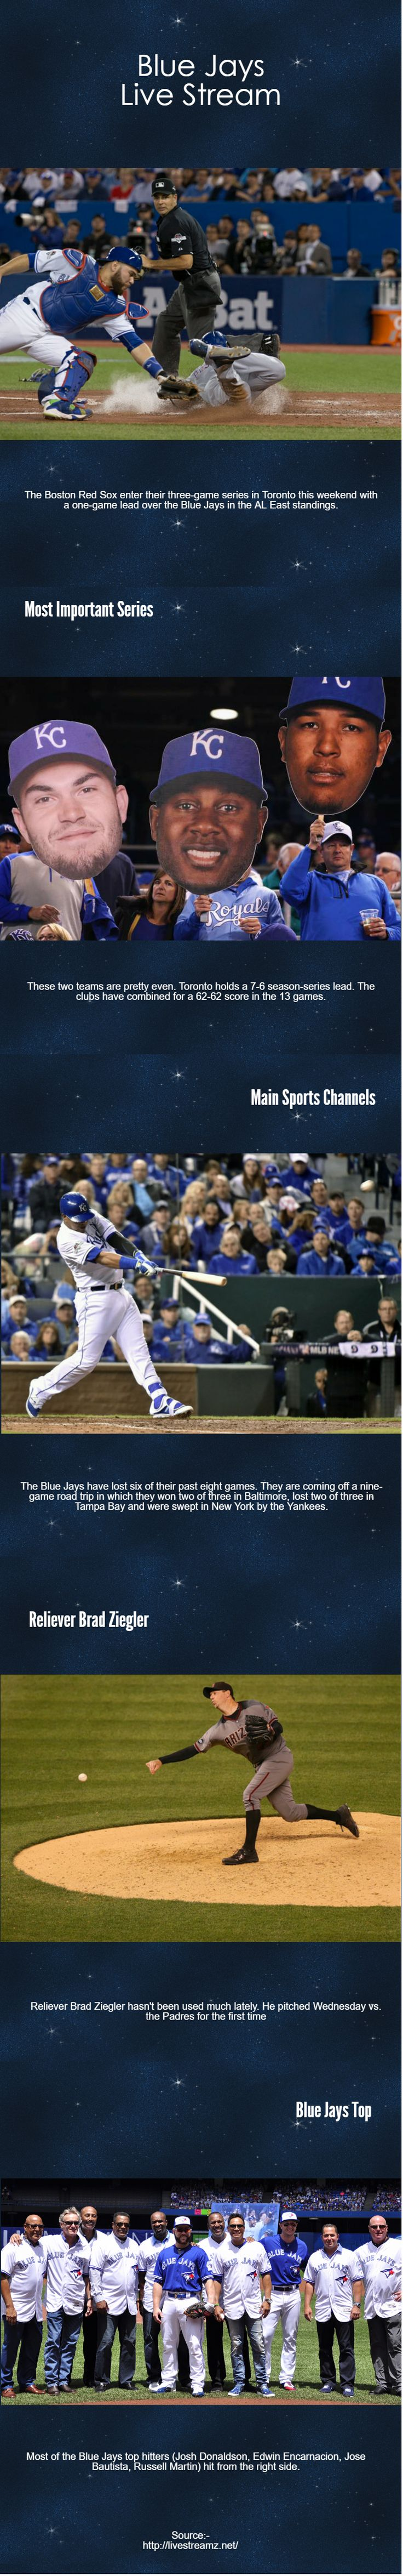 MLB Live Stream Watch your favorite MLB Baseball games online in hd for free. Make sure you tune in to watch MLB Live stream on livestreamz from anywhere in the world. We live stream MLB games from the home team broadcasting and also the away team. http://livestreamz.net/nba-stream/ #watch_mlb_online #los_angeles_dodgers_live_stream #blue_jays_live_stream #los_angeles_dodgers_vs #Pacers_live_stream #Hawks_live_stream #Hornets_live_stream #Heat_live_stream